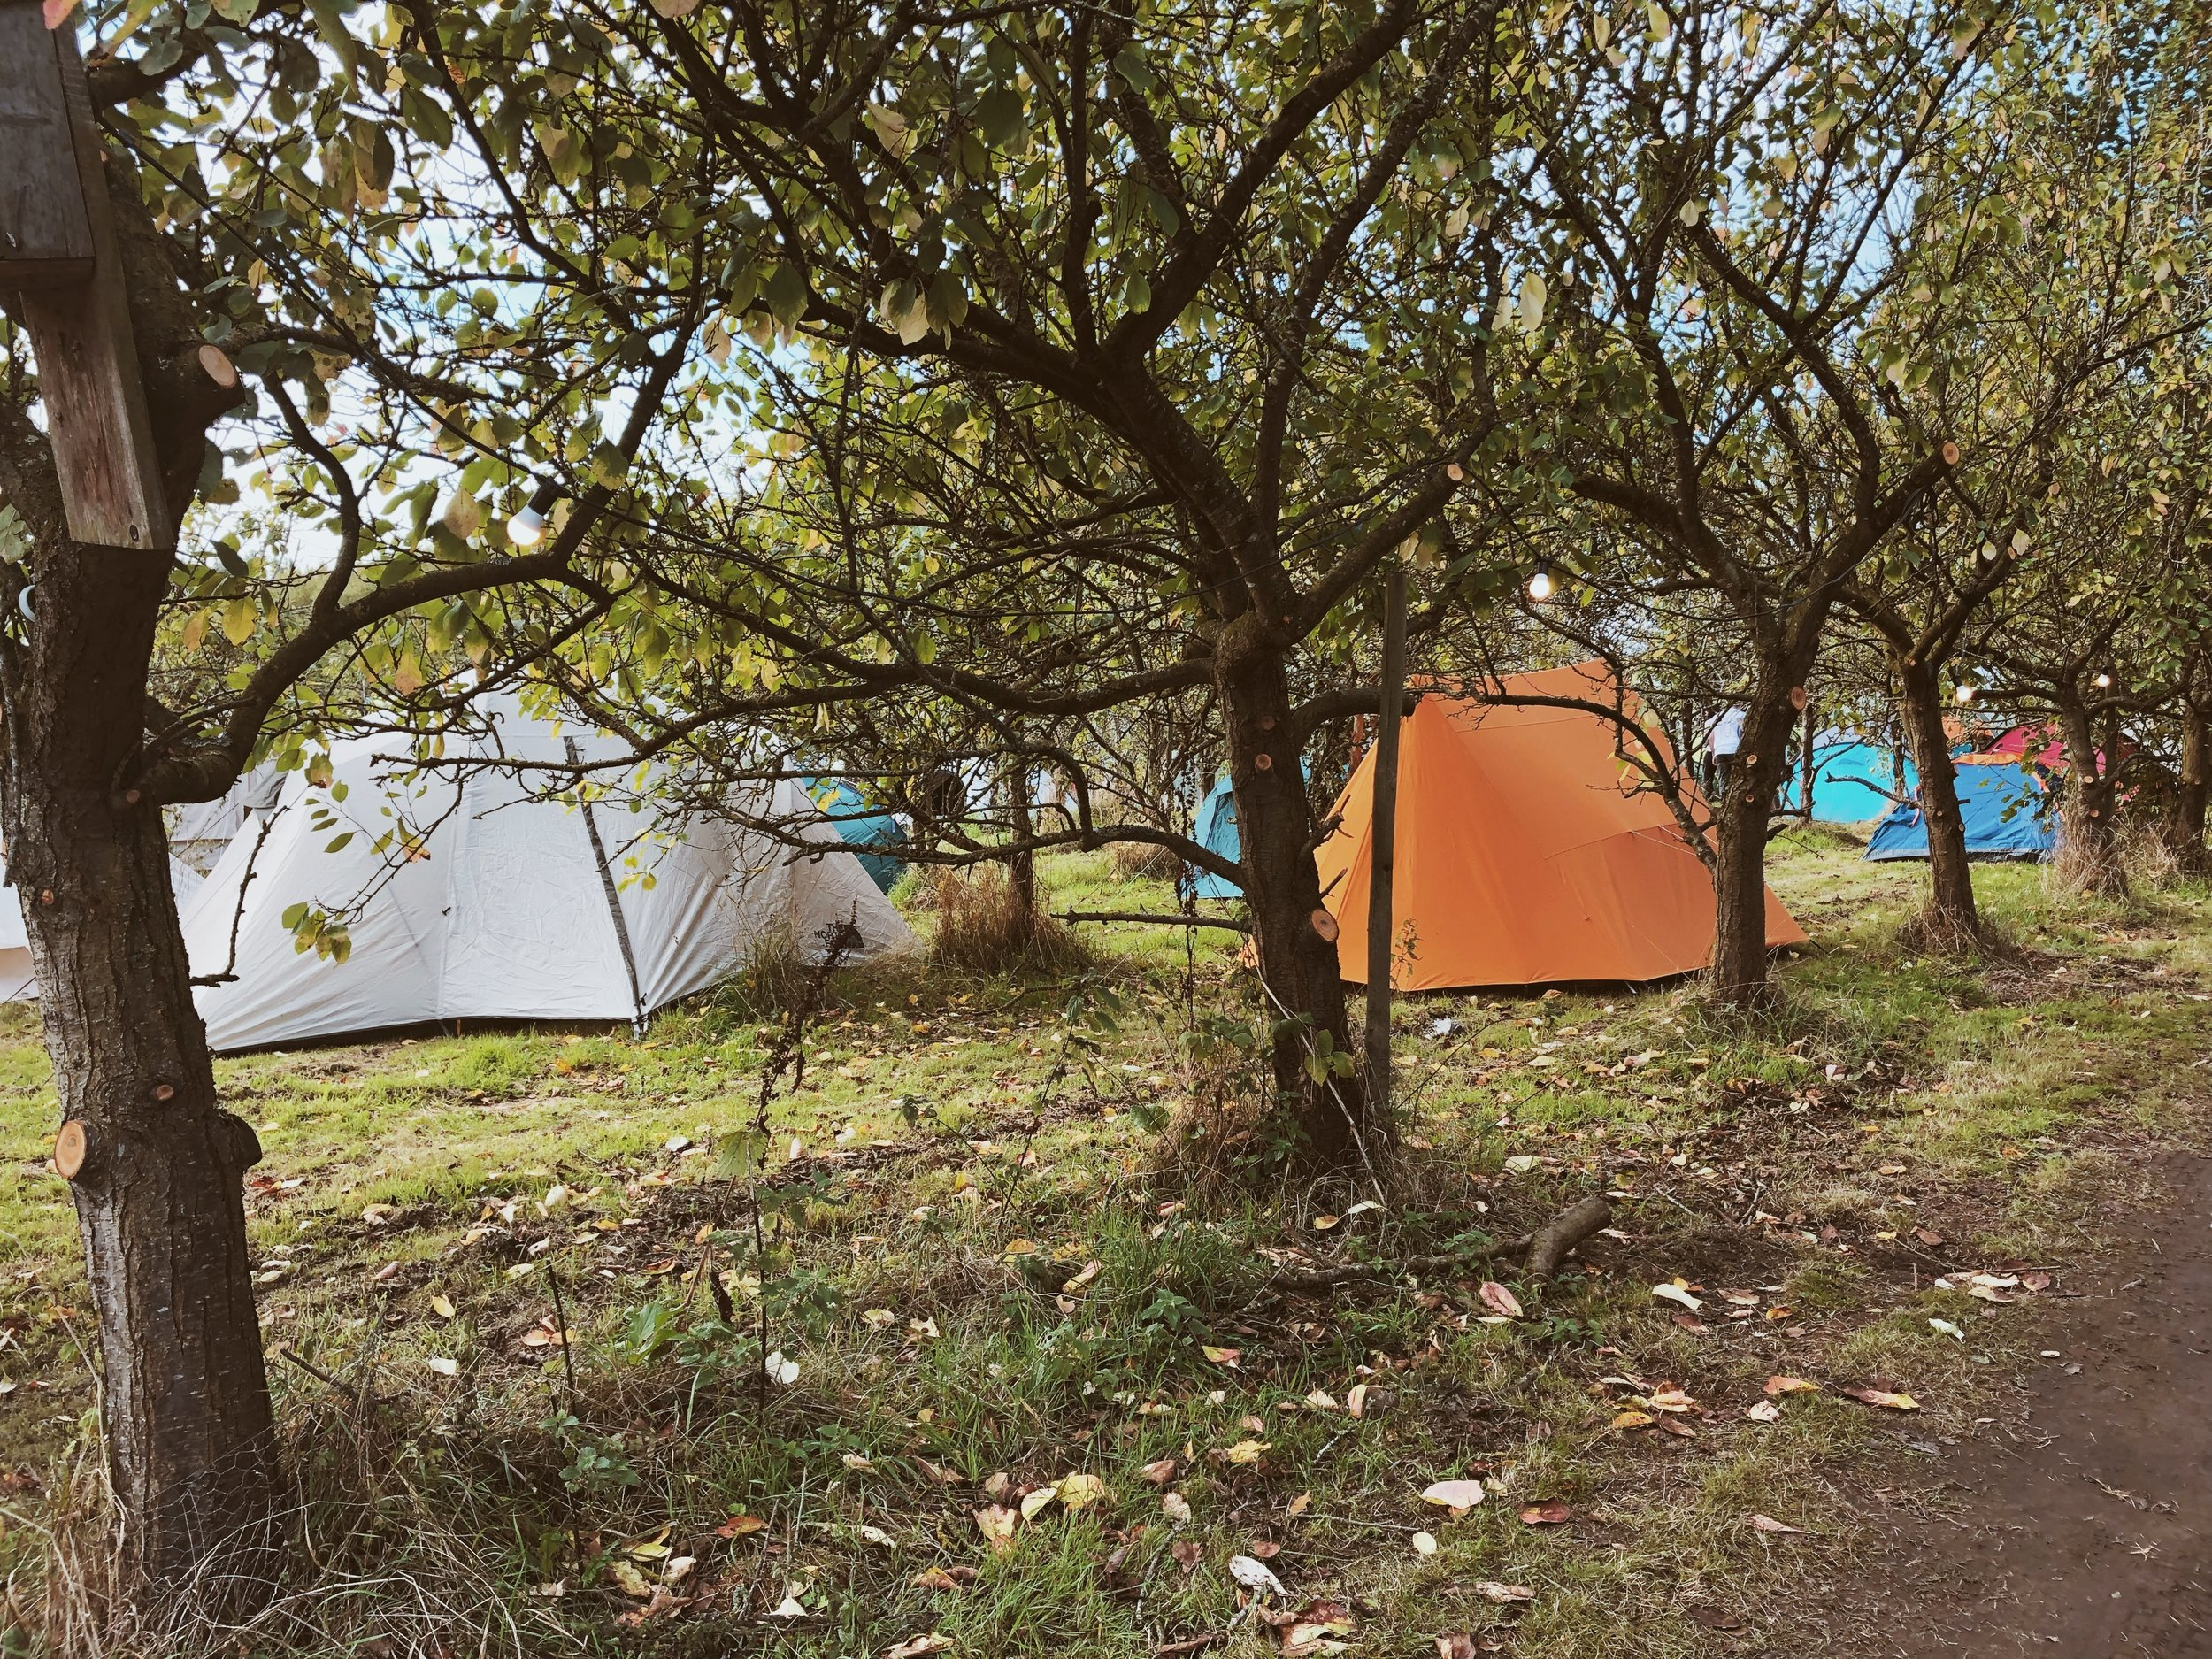 Camping in the orchards